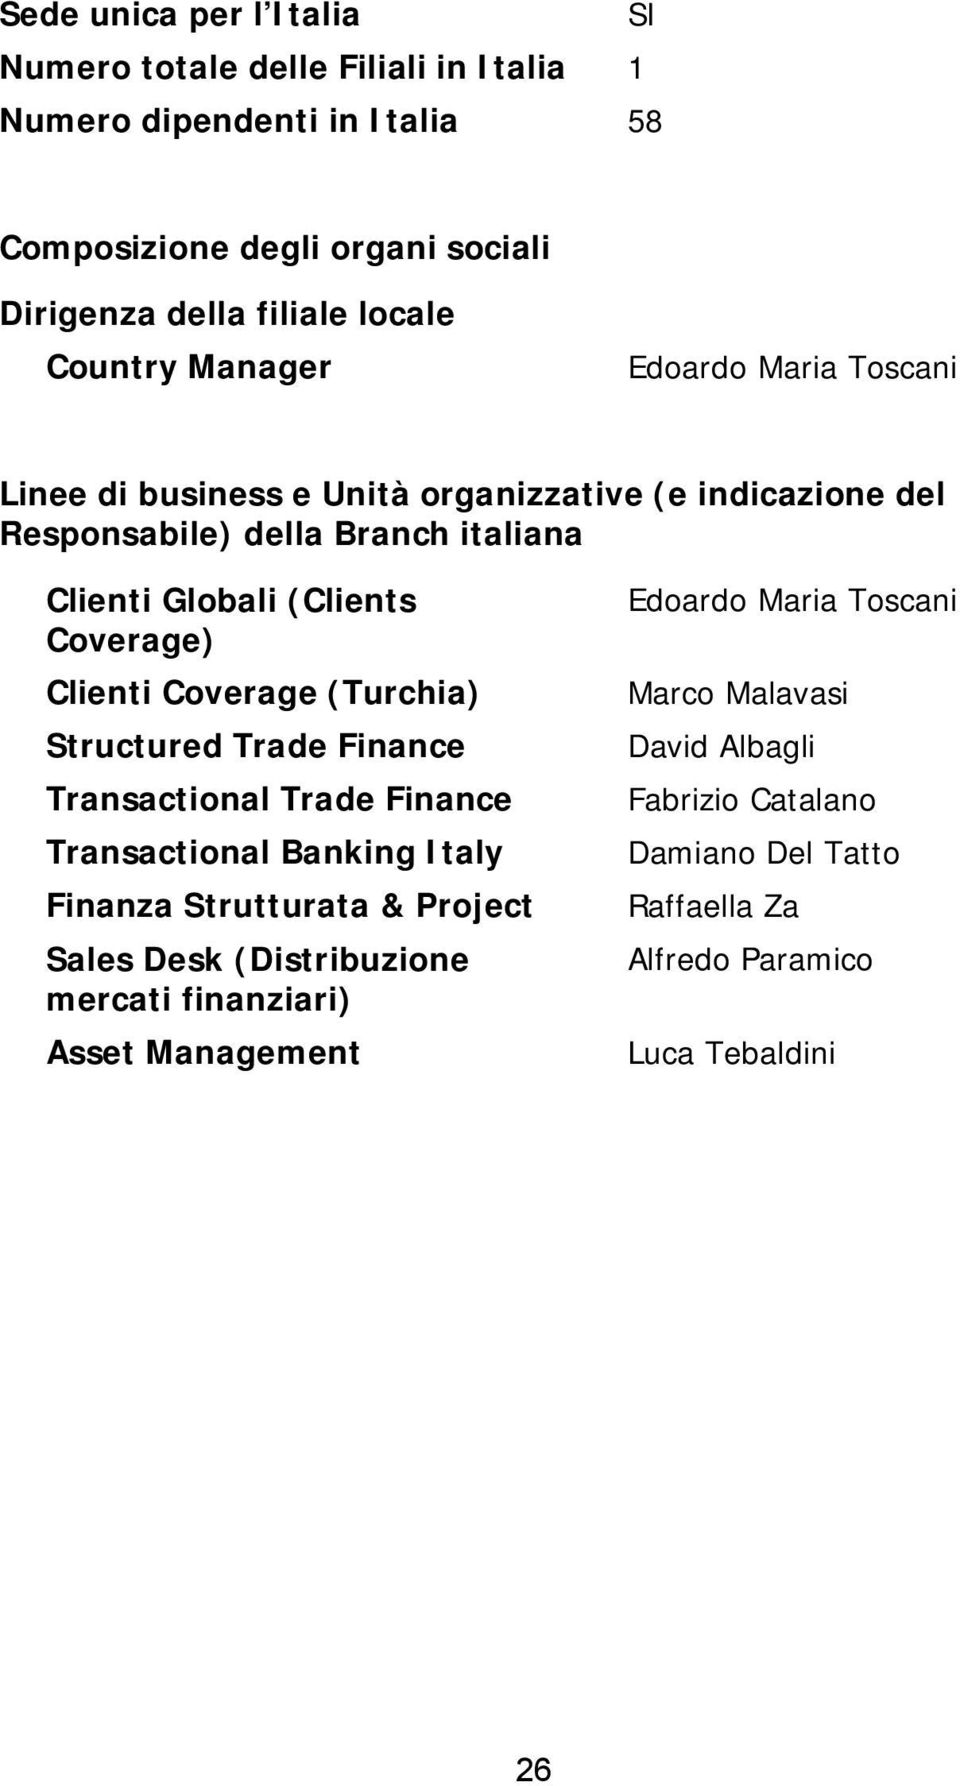 Coverage) Clienti Coverage (Turchia) Structured Trade Finance Transactional Trade Finance Transactional Banking Italy Finanza Strutturata & Project Sales Desk